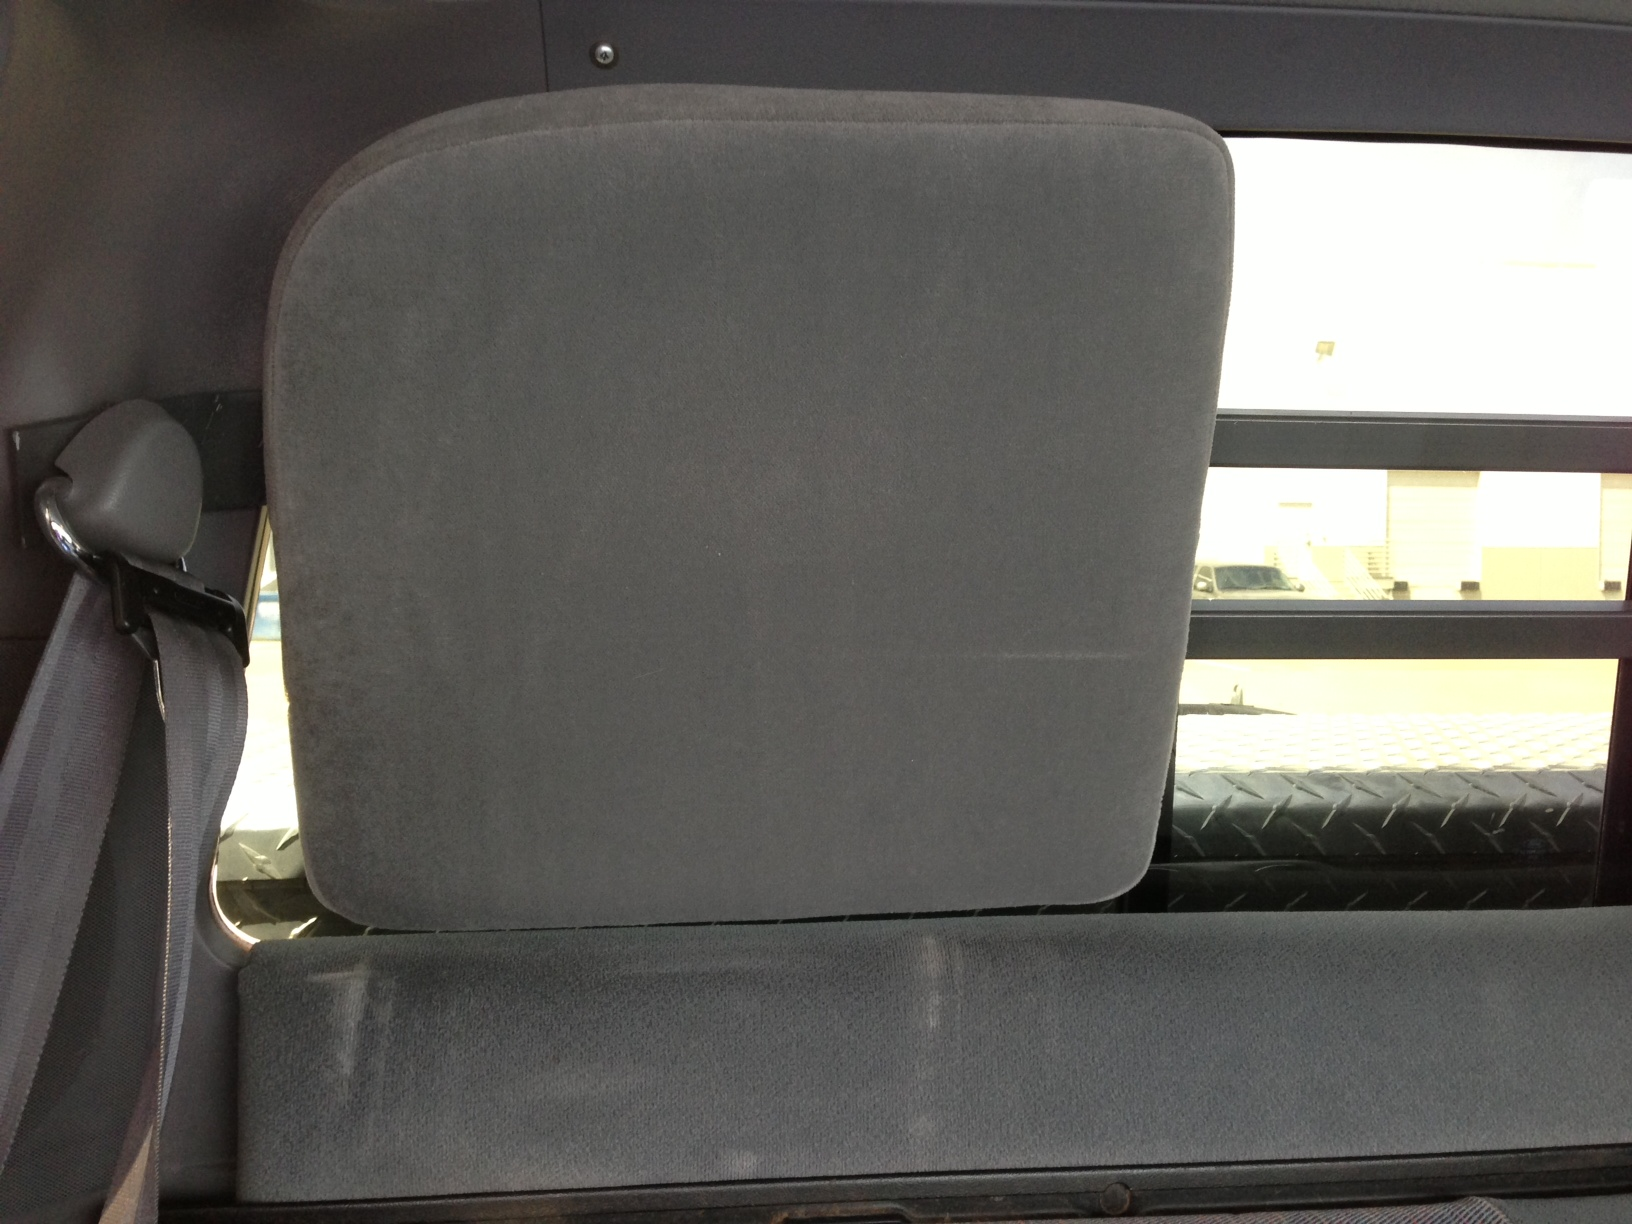 7 3 powerstroke open source visio alternative network diagram extended cab rear bench seat headrests - diesel forum thedieselstop.com